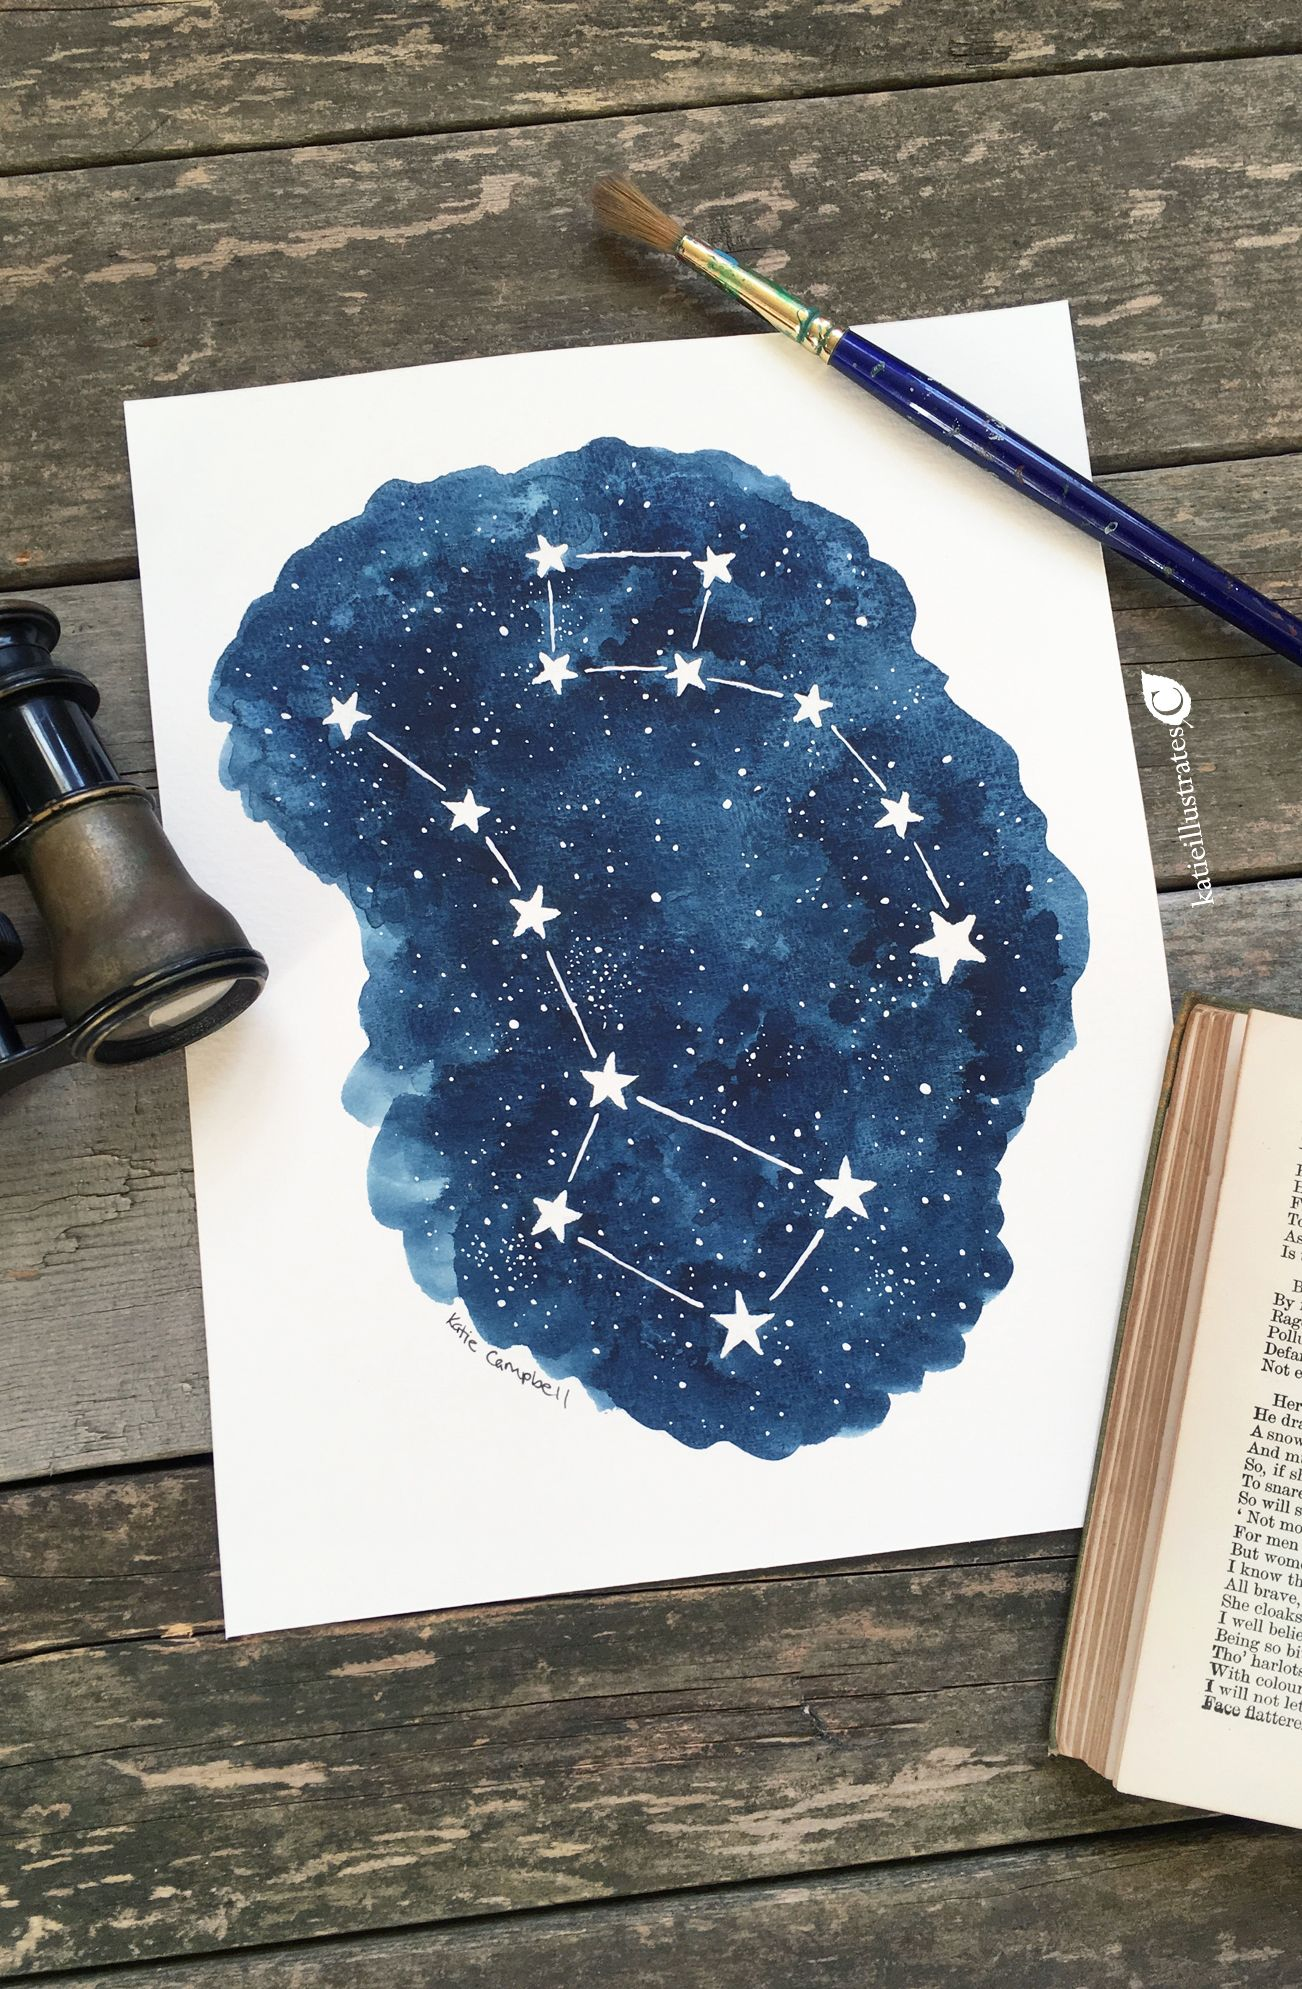 Original Watercolor Gouache Painting Of The Big Dipper And